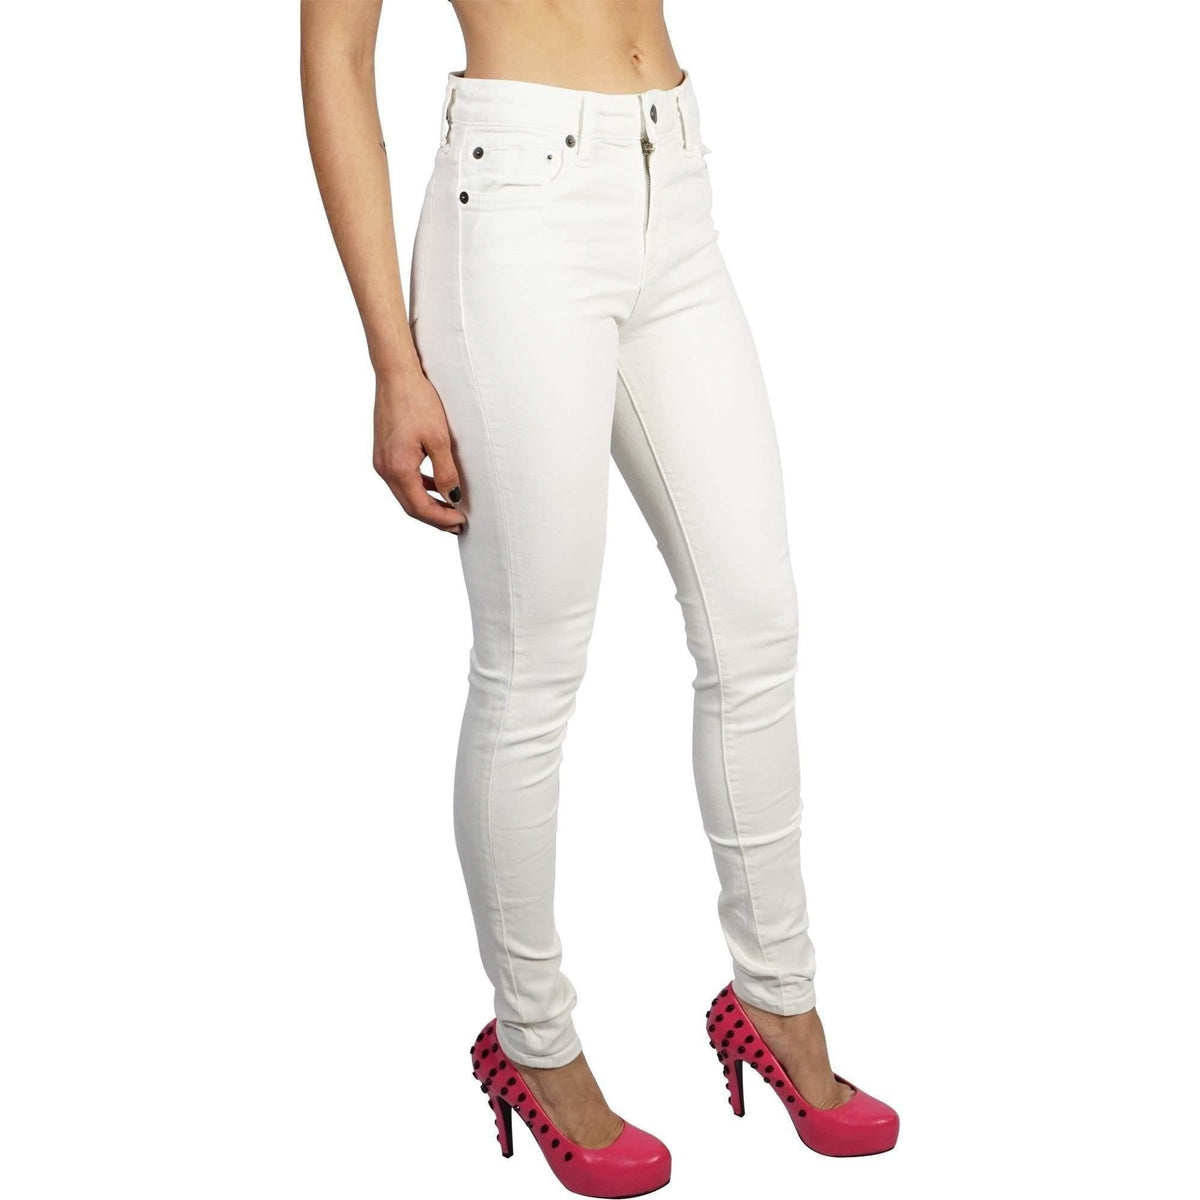 KILL CITY LADIES JUNKIE FIT DYED STRETCH TWILL SKINNY JEANS - Salemonster